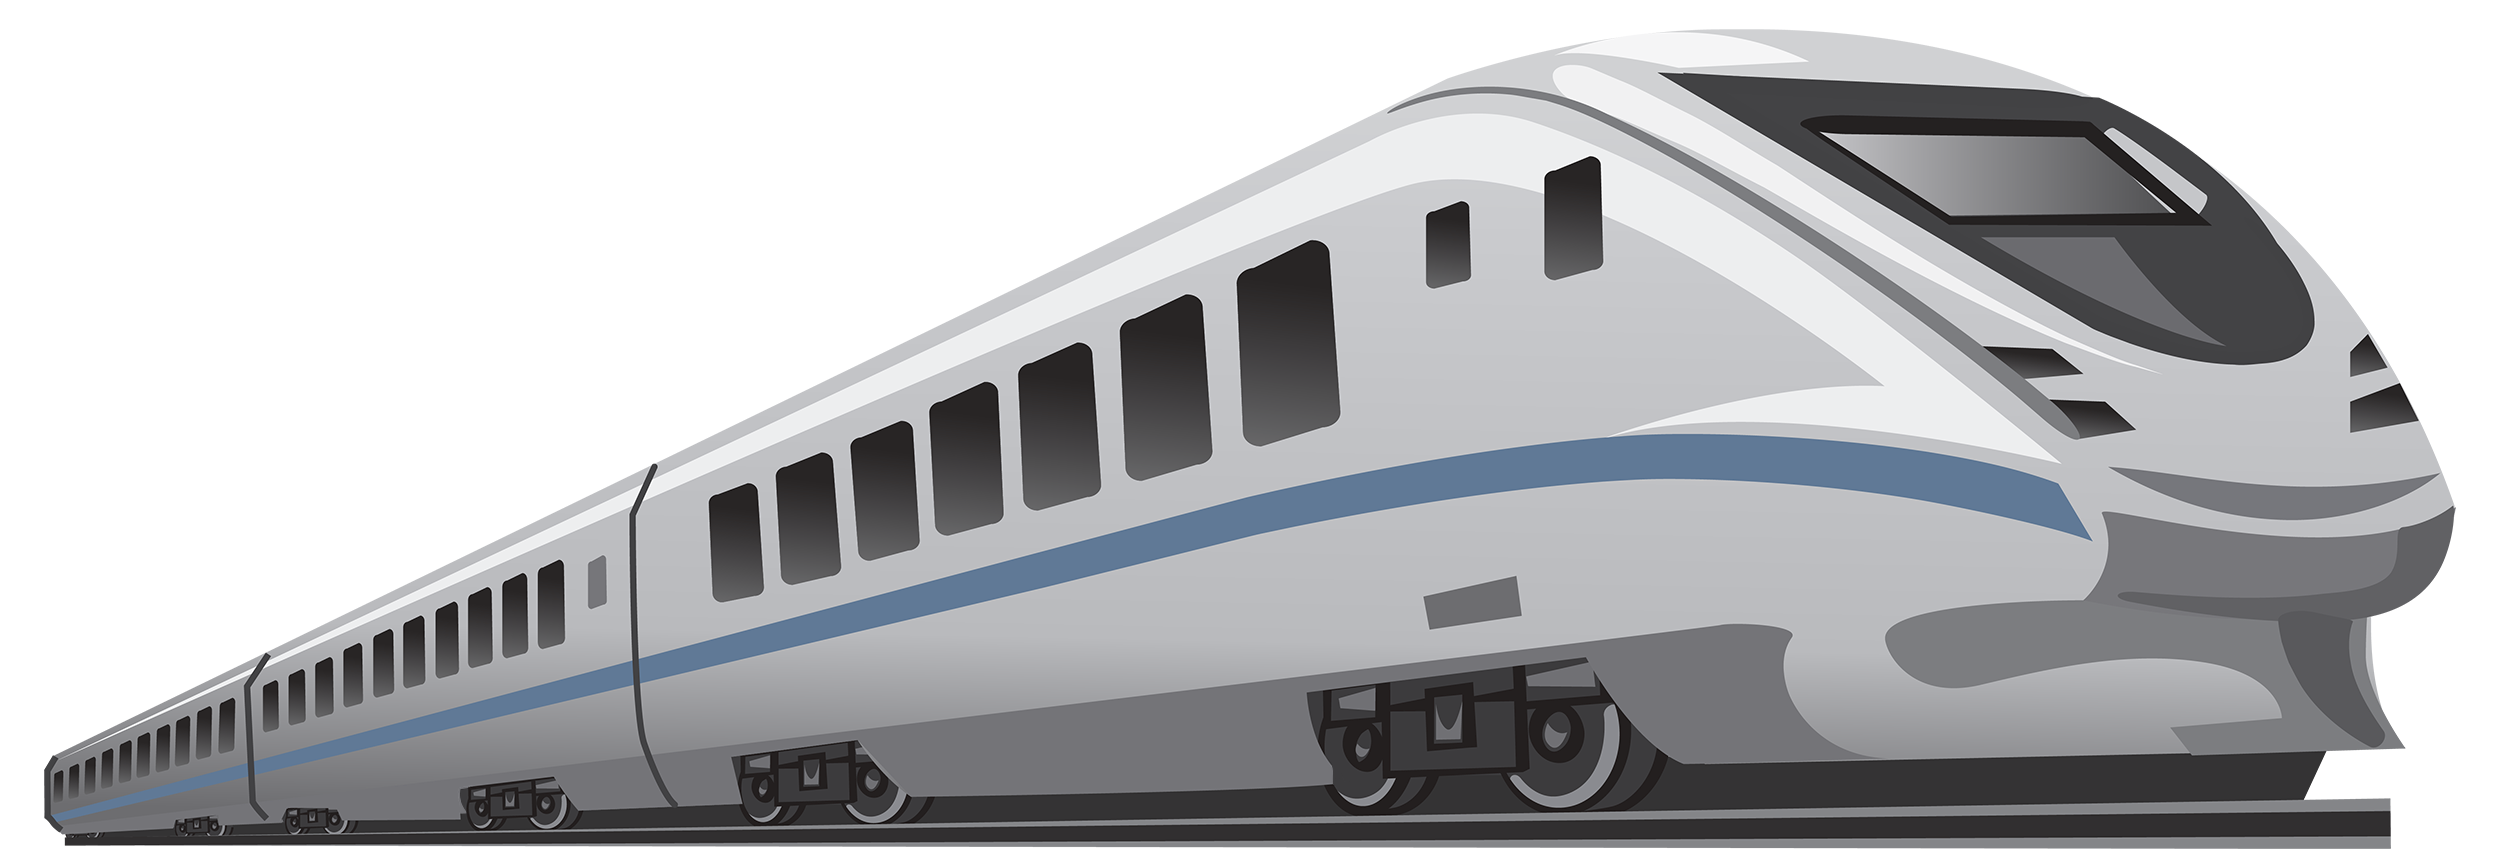 Trains Png - Modern Train PNG Clipart - Best WEB Clipart